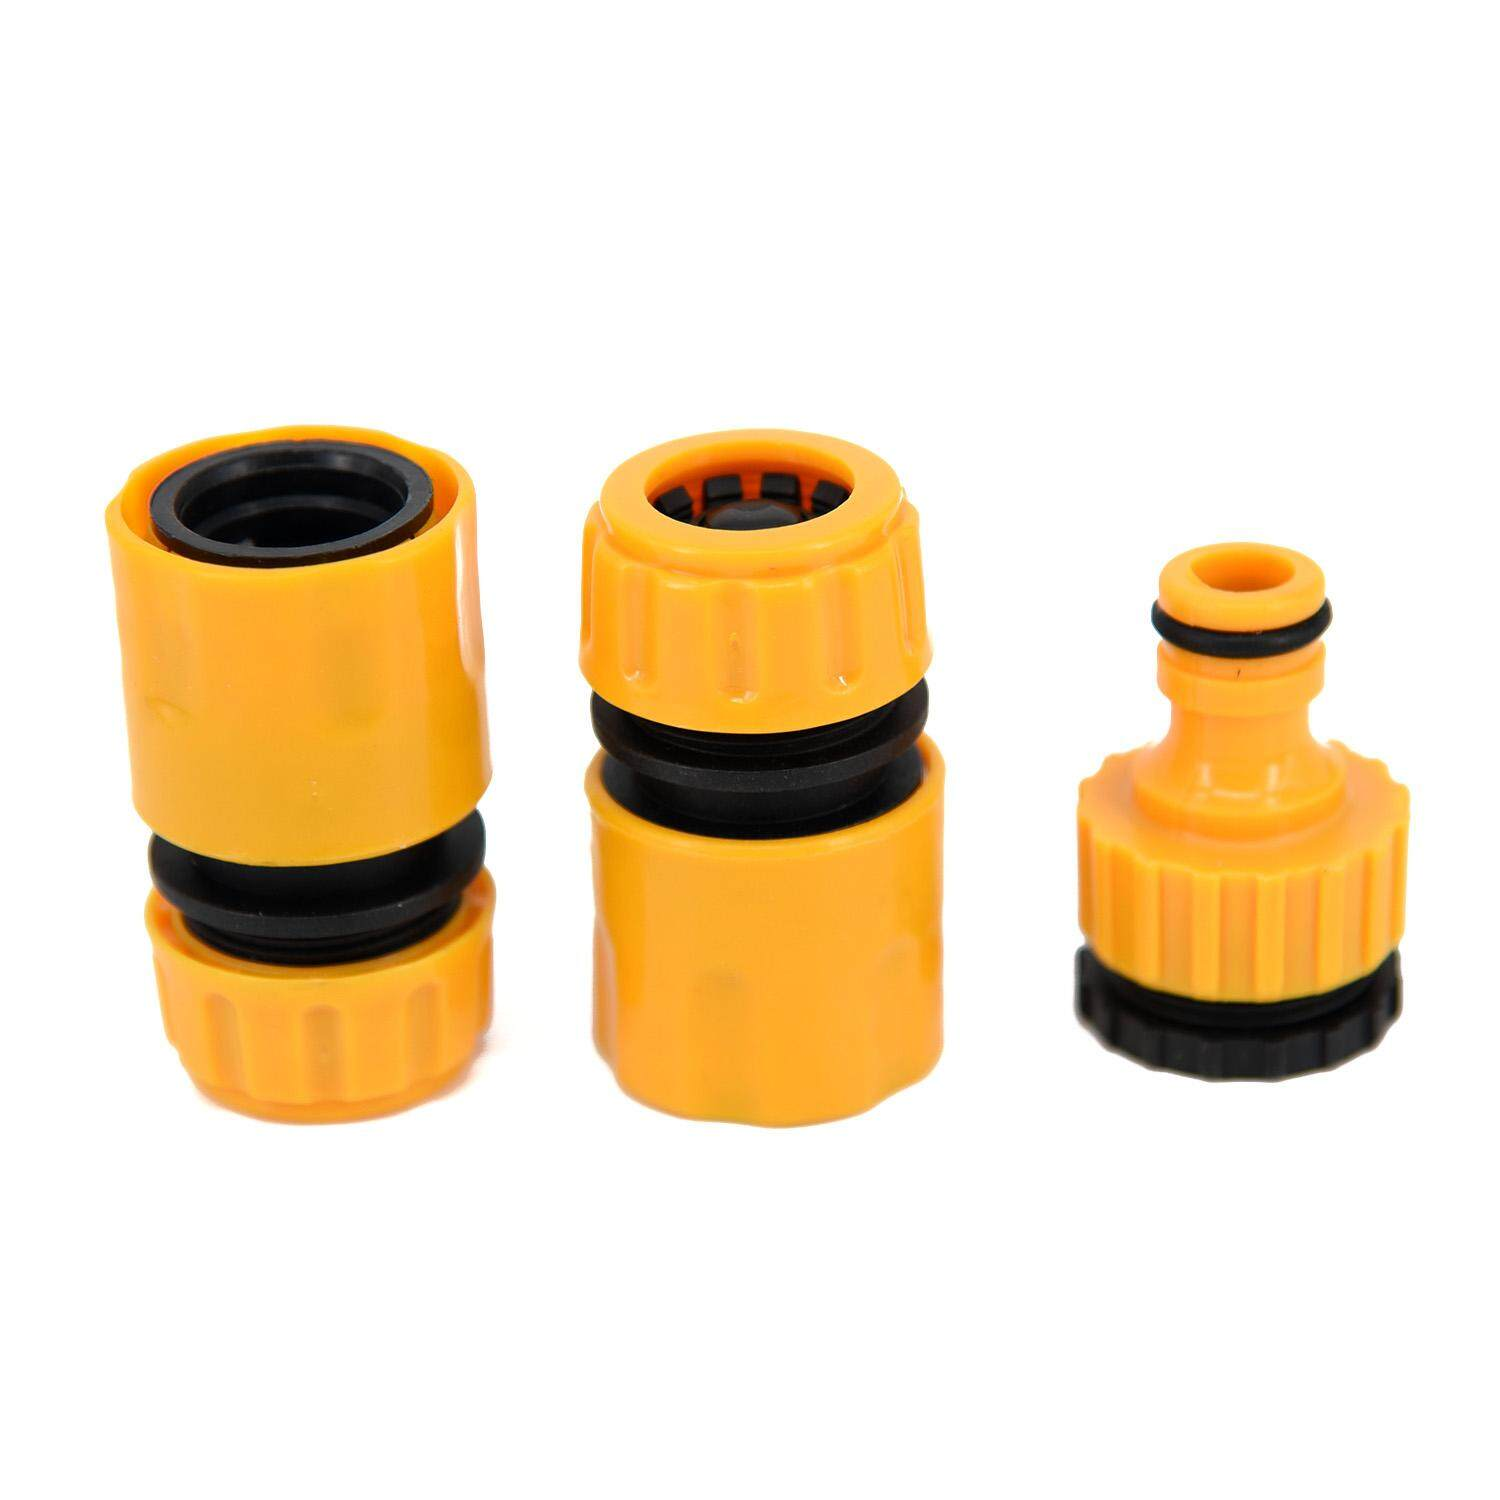 3pcs 1/2 3/4 Hose Pipe Fitting Set Quick Garden Water Connector Adaptor New